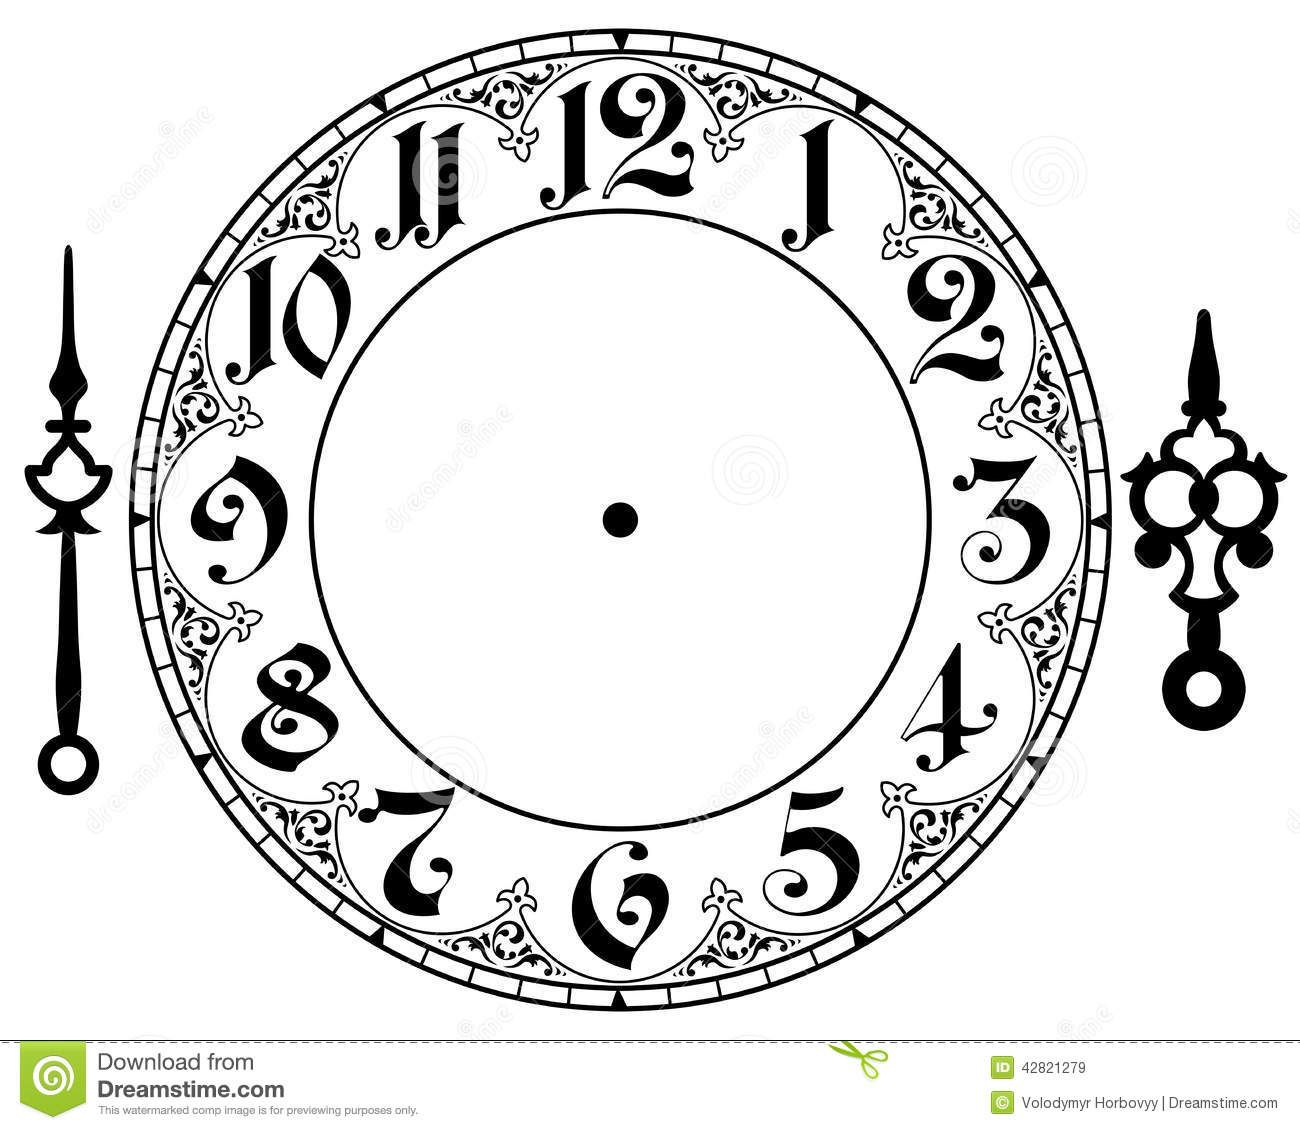 Antique clock clipart clipart freeuse library Vintage Clock Clipart - Clipart Kid | Drawing | Clock face printable ... clipart freeuse library